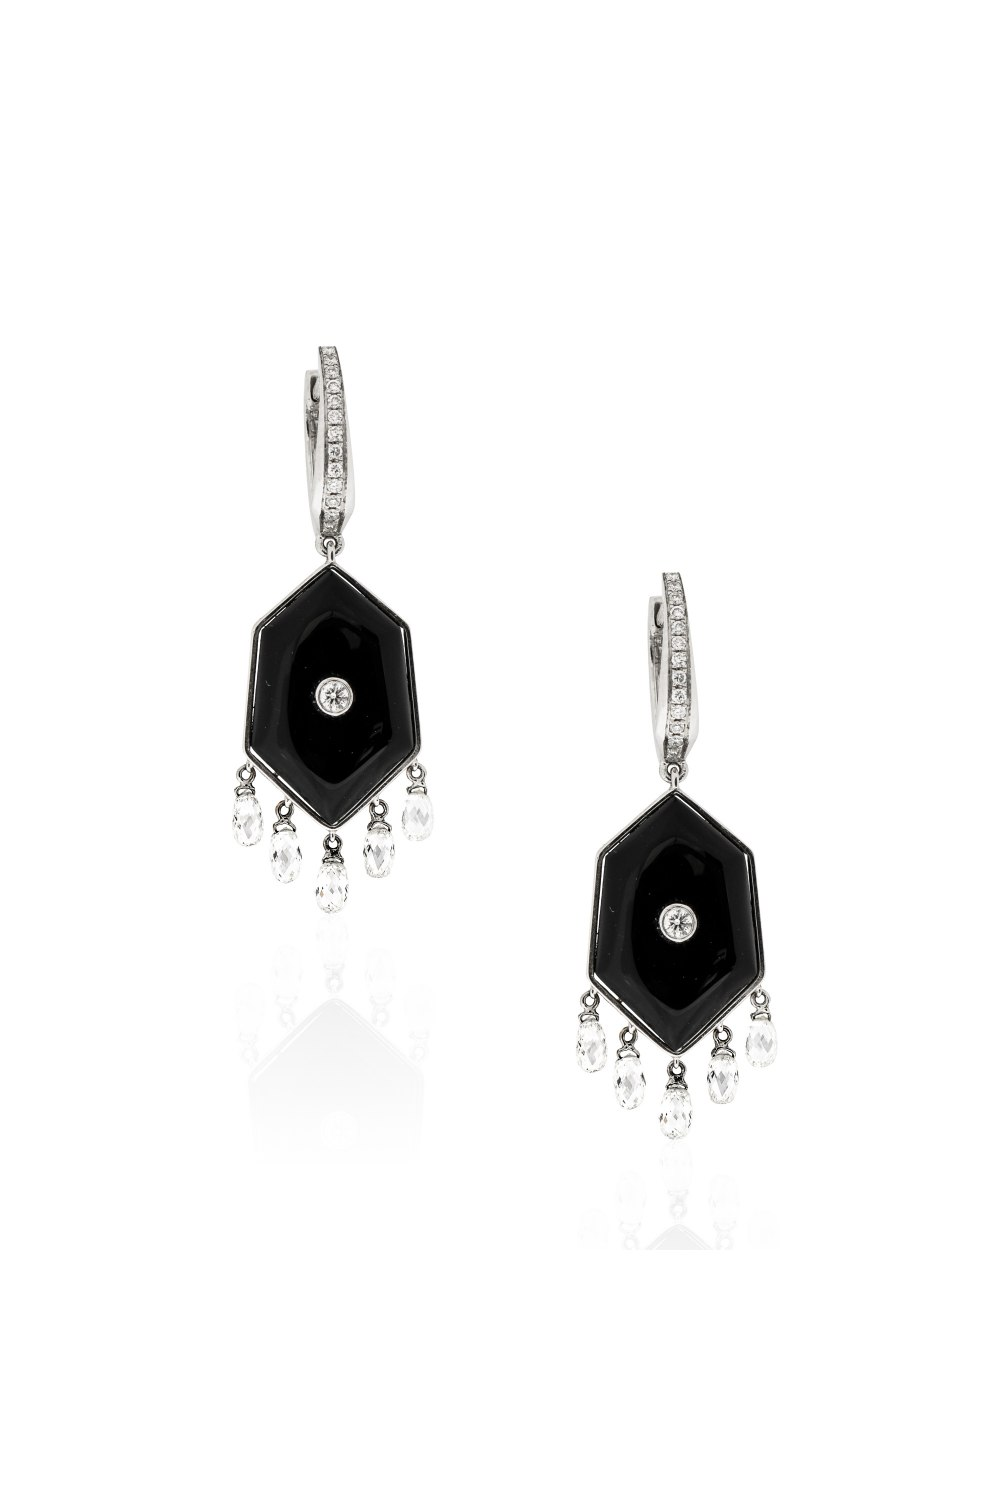 Kessaris-Black Onyx Diamond Drop Earrings